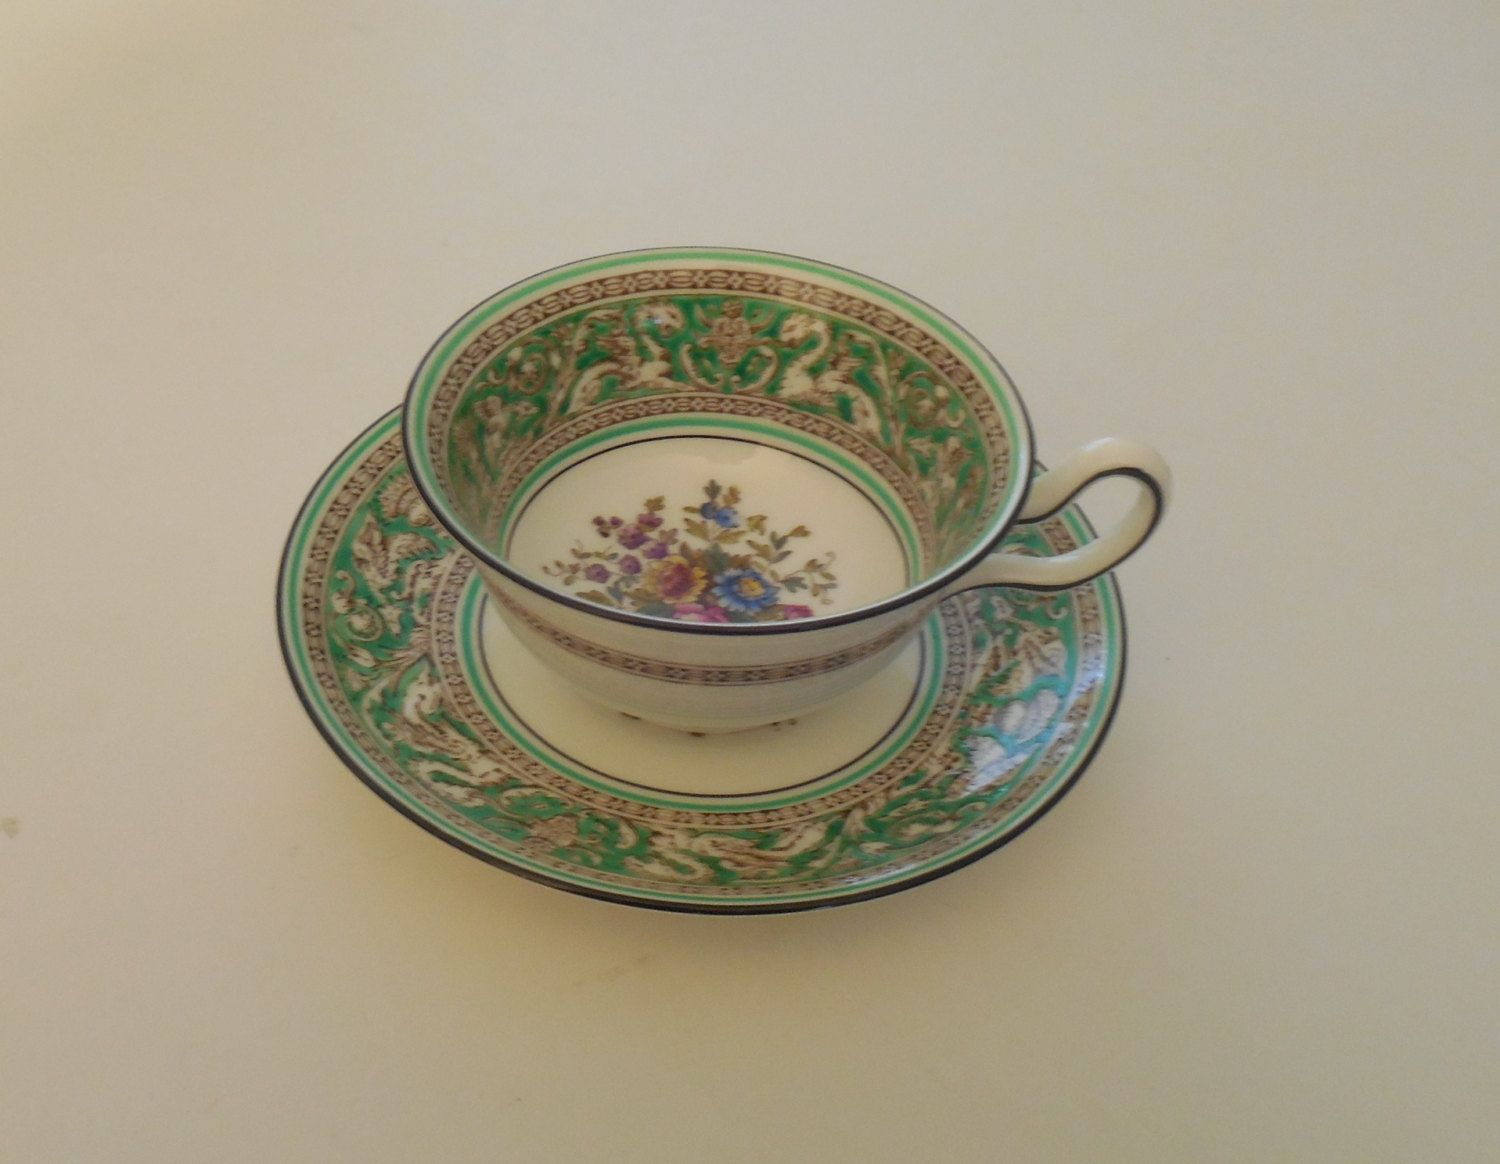 Vintage Wedgewood Bone China Florentine Green with Floral Bouquet Cup and Saucer by ItsALynn on Etsy